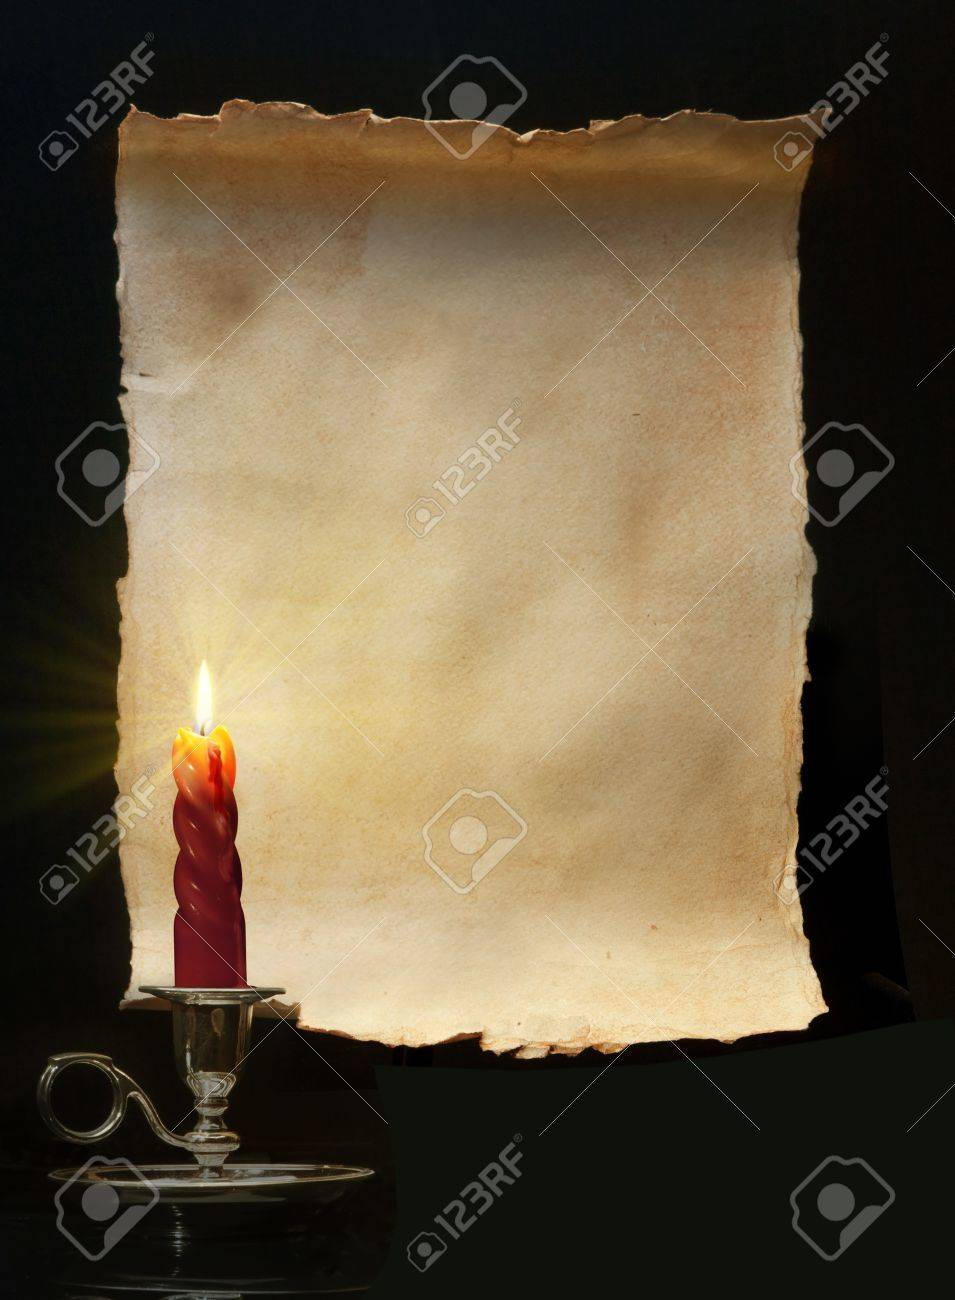 Vintage roll lit a candle Stock Photo - 10492839